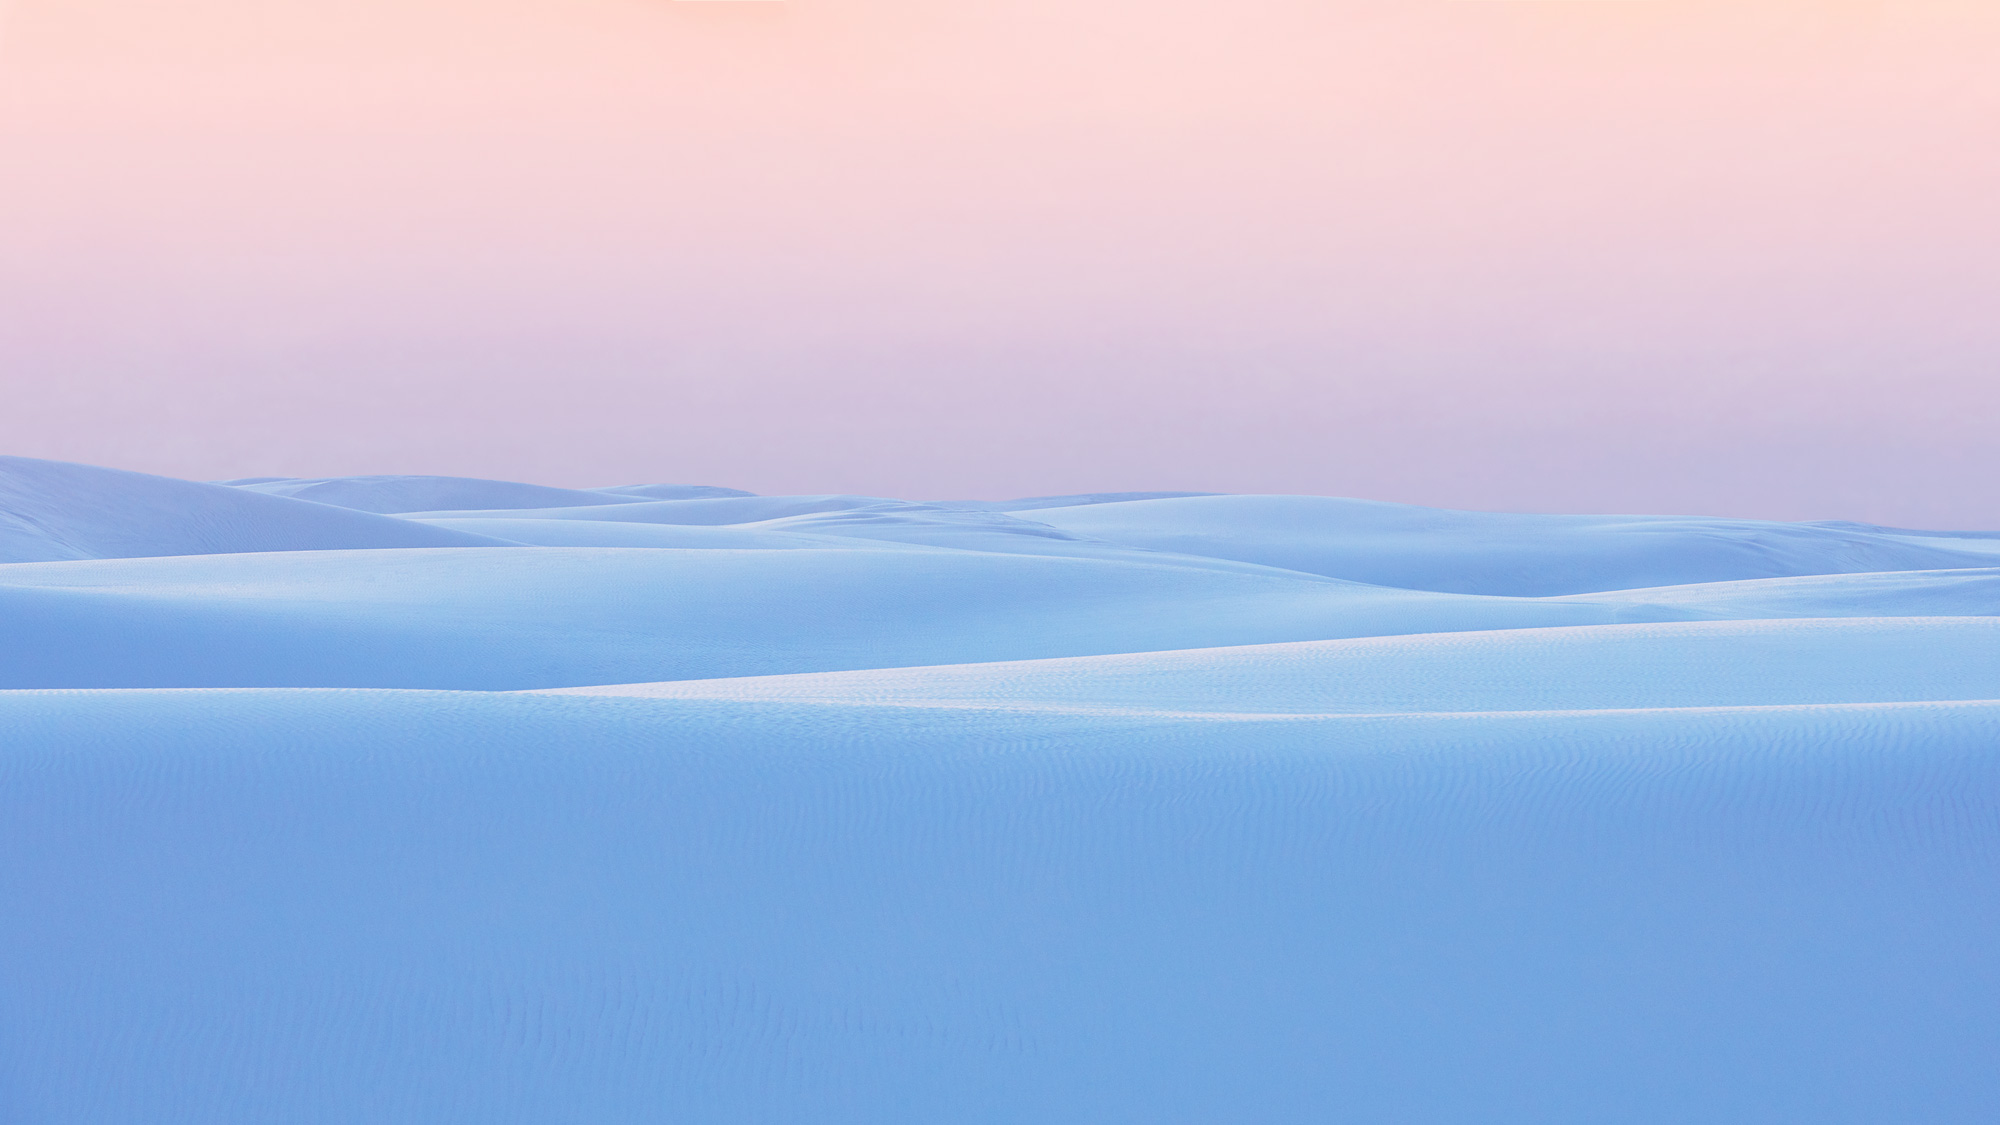 White Sands National Monument, New Mexico - Stephen Denton Photography - Phoenix AZ Commercial Photographer